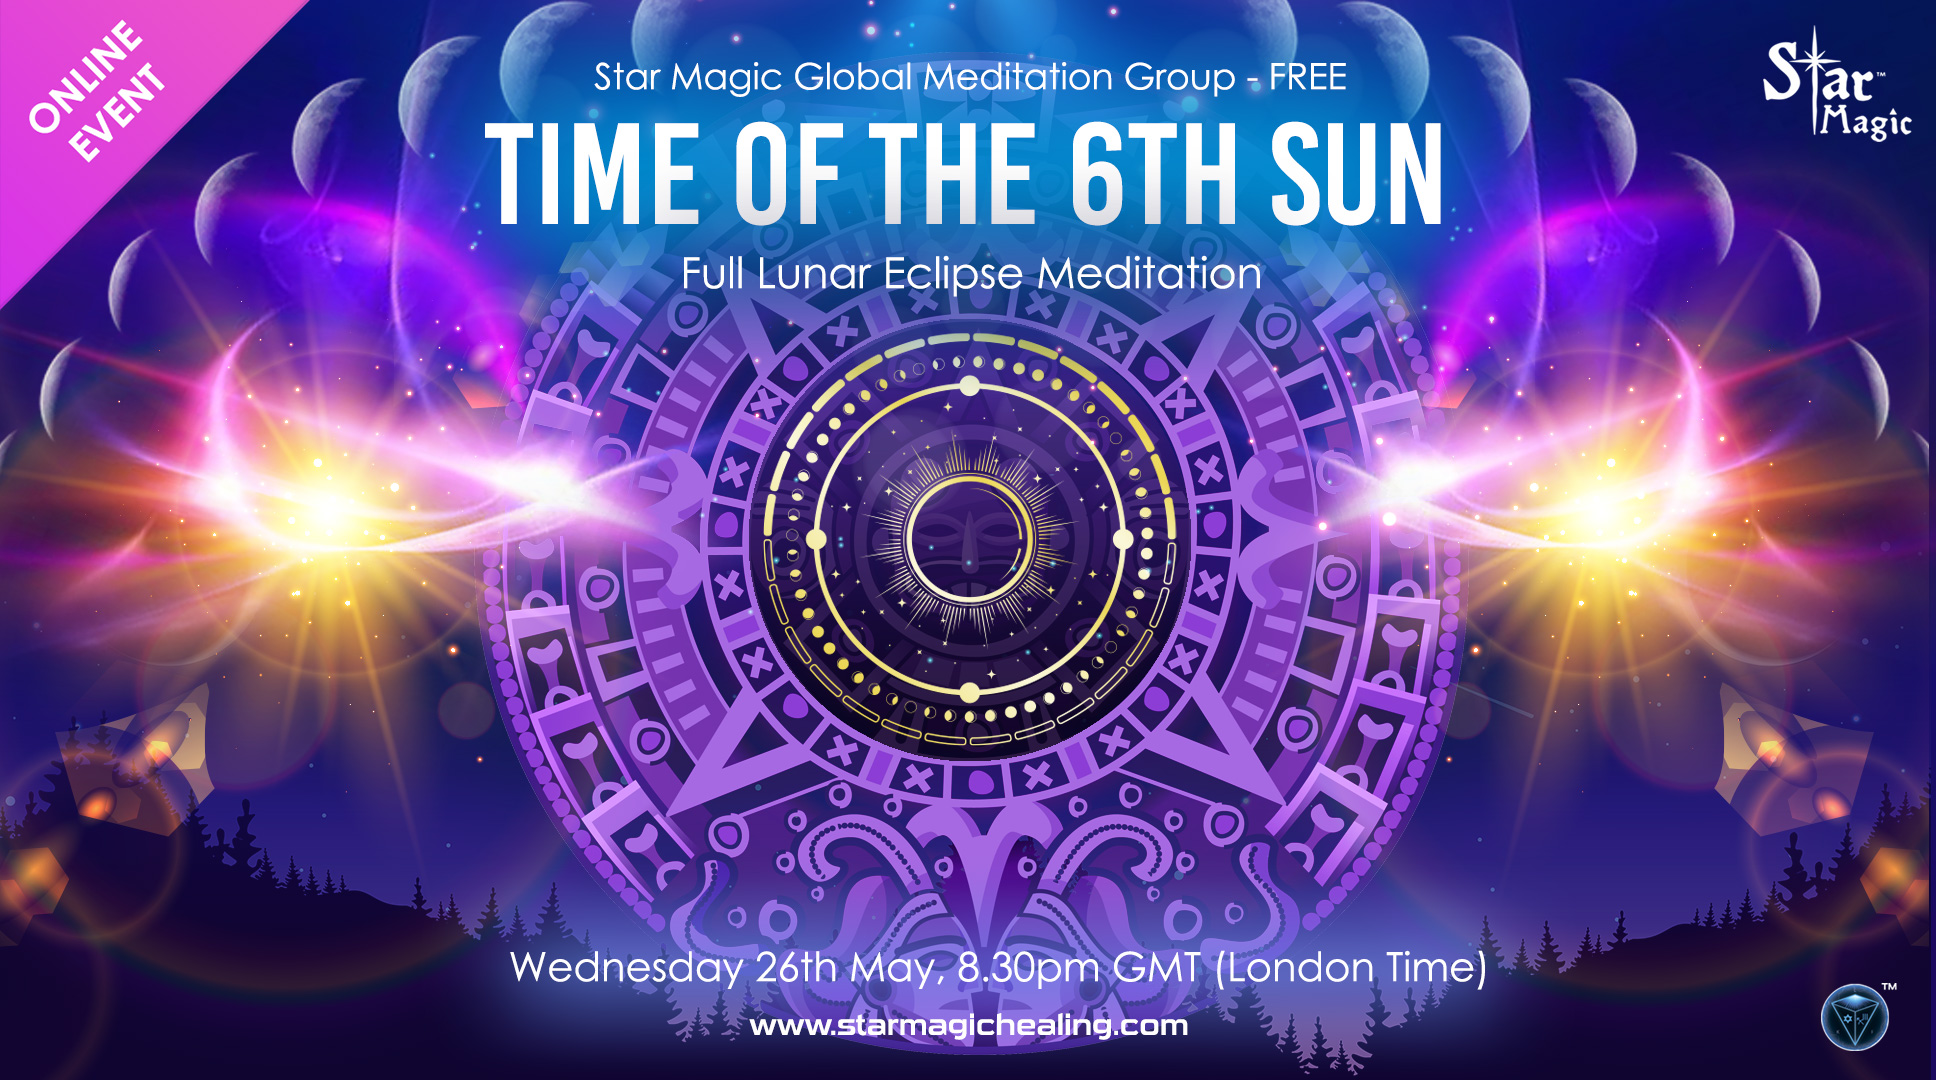 Time of the 6th Sun - Full Lunar Eclipse Meditation